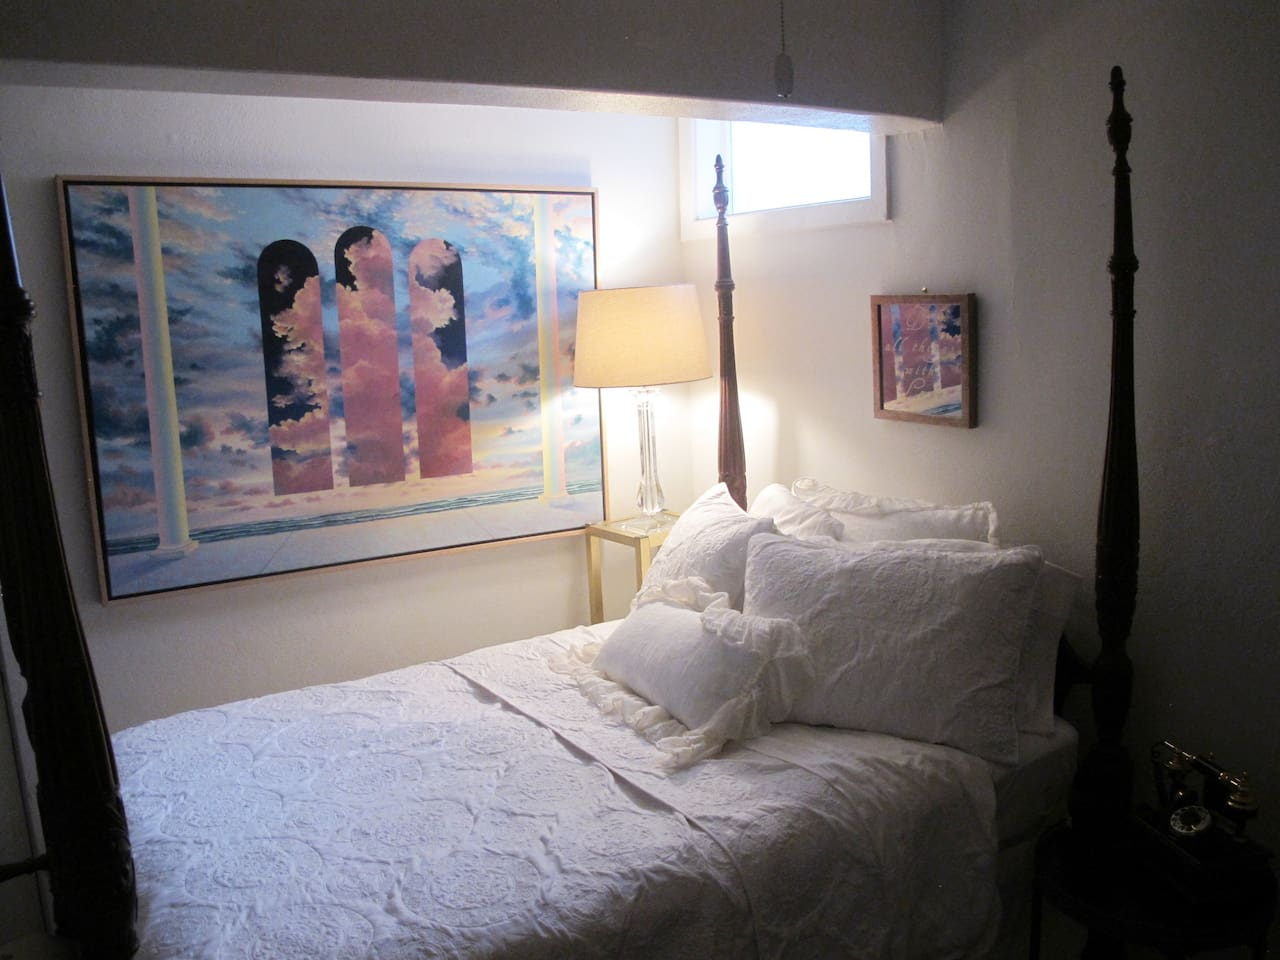 Sturdy and cozy 4 poster bed with lots of pillows and soft blankets